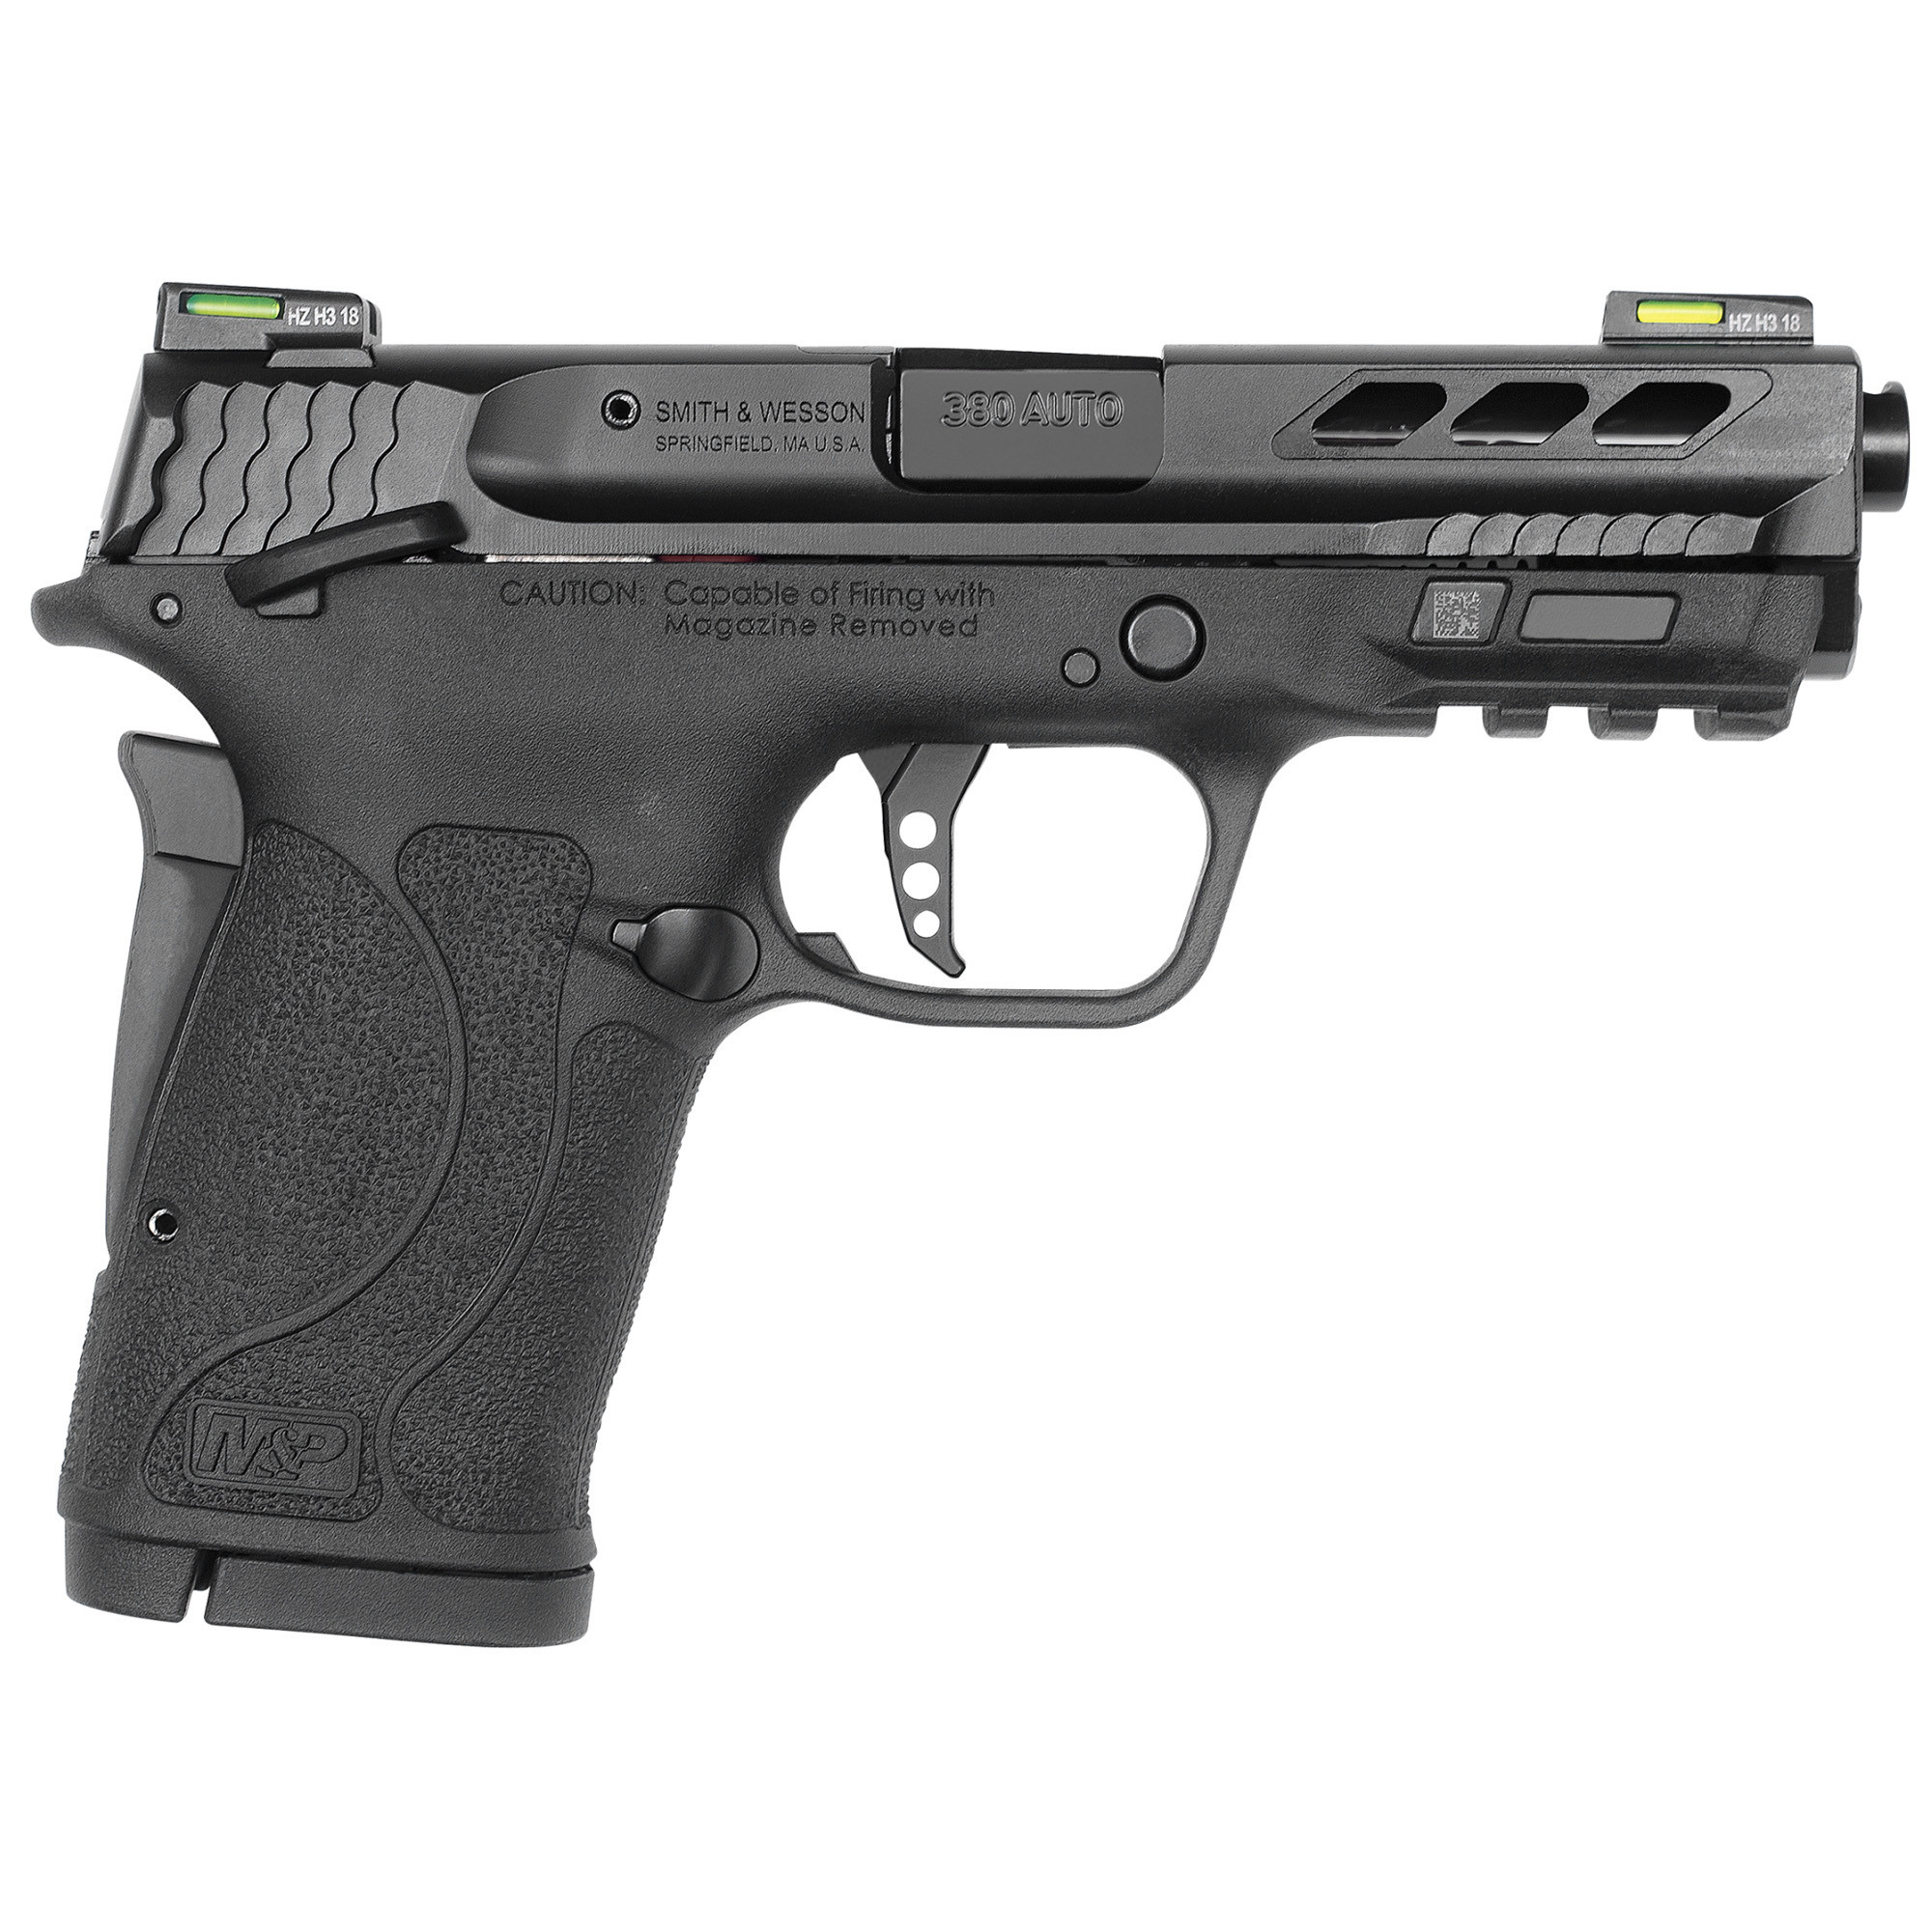 Smith & Wesson SMITH AND WESSON SHIELD EZ PC 380